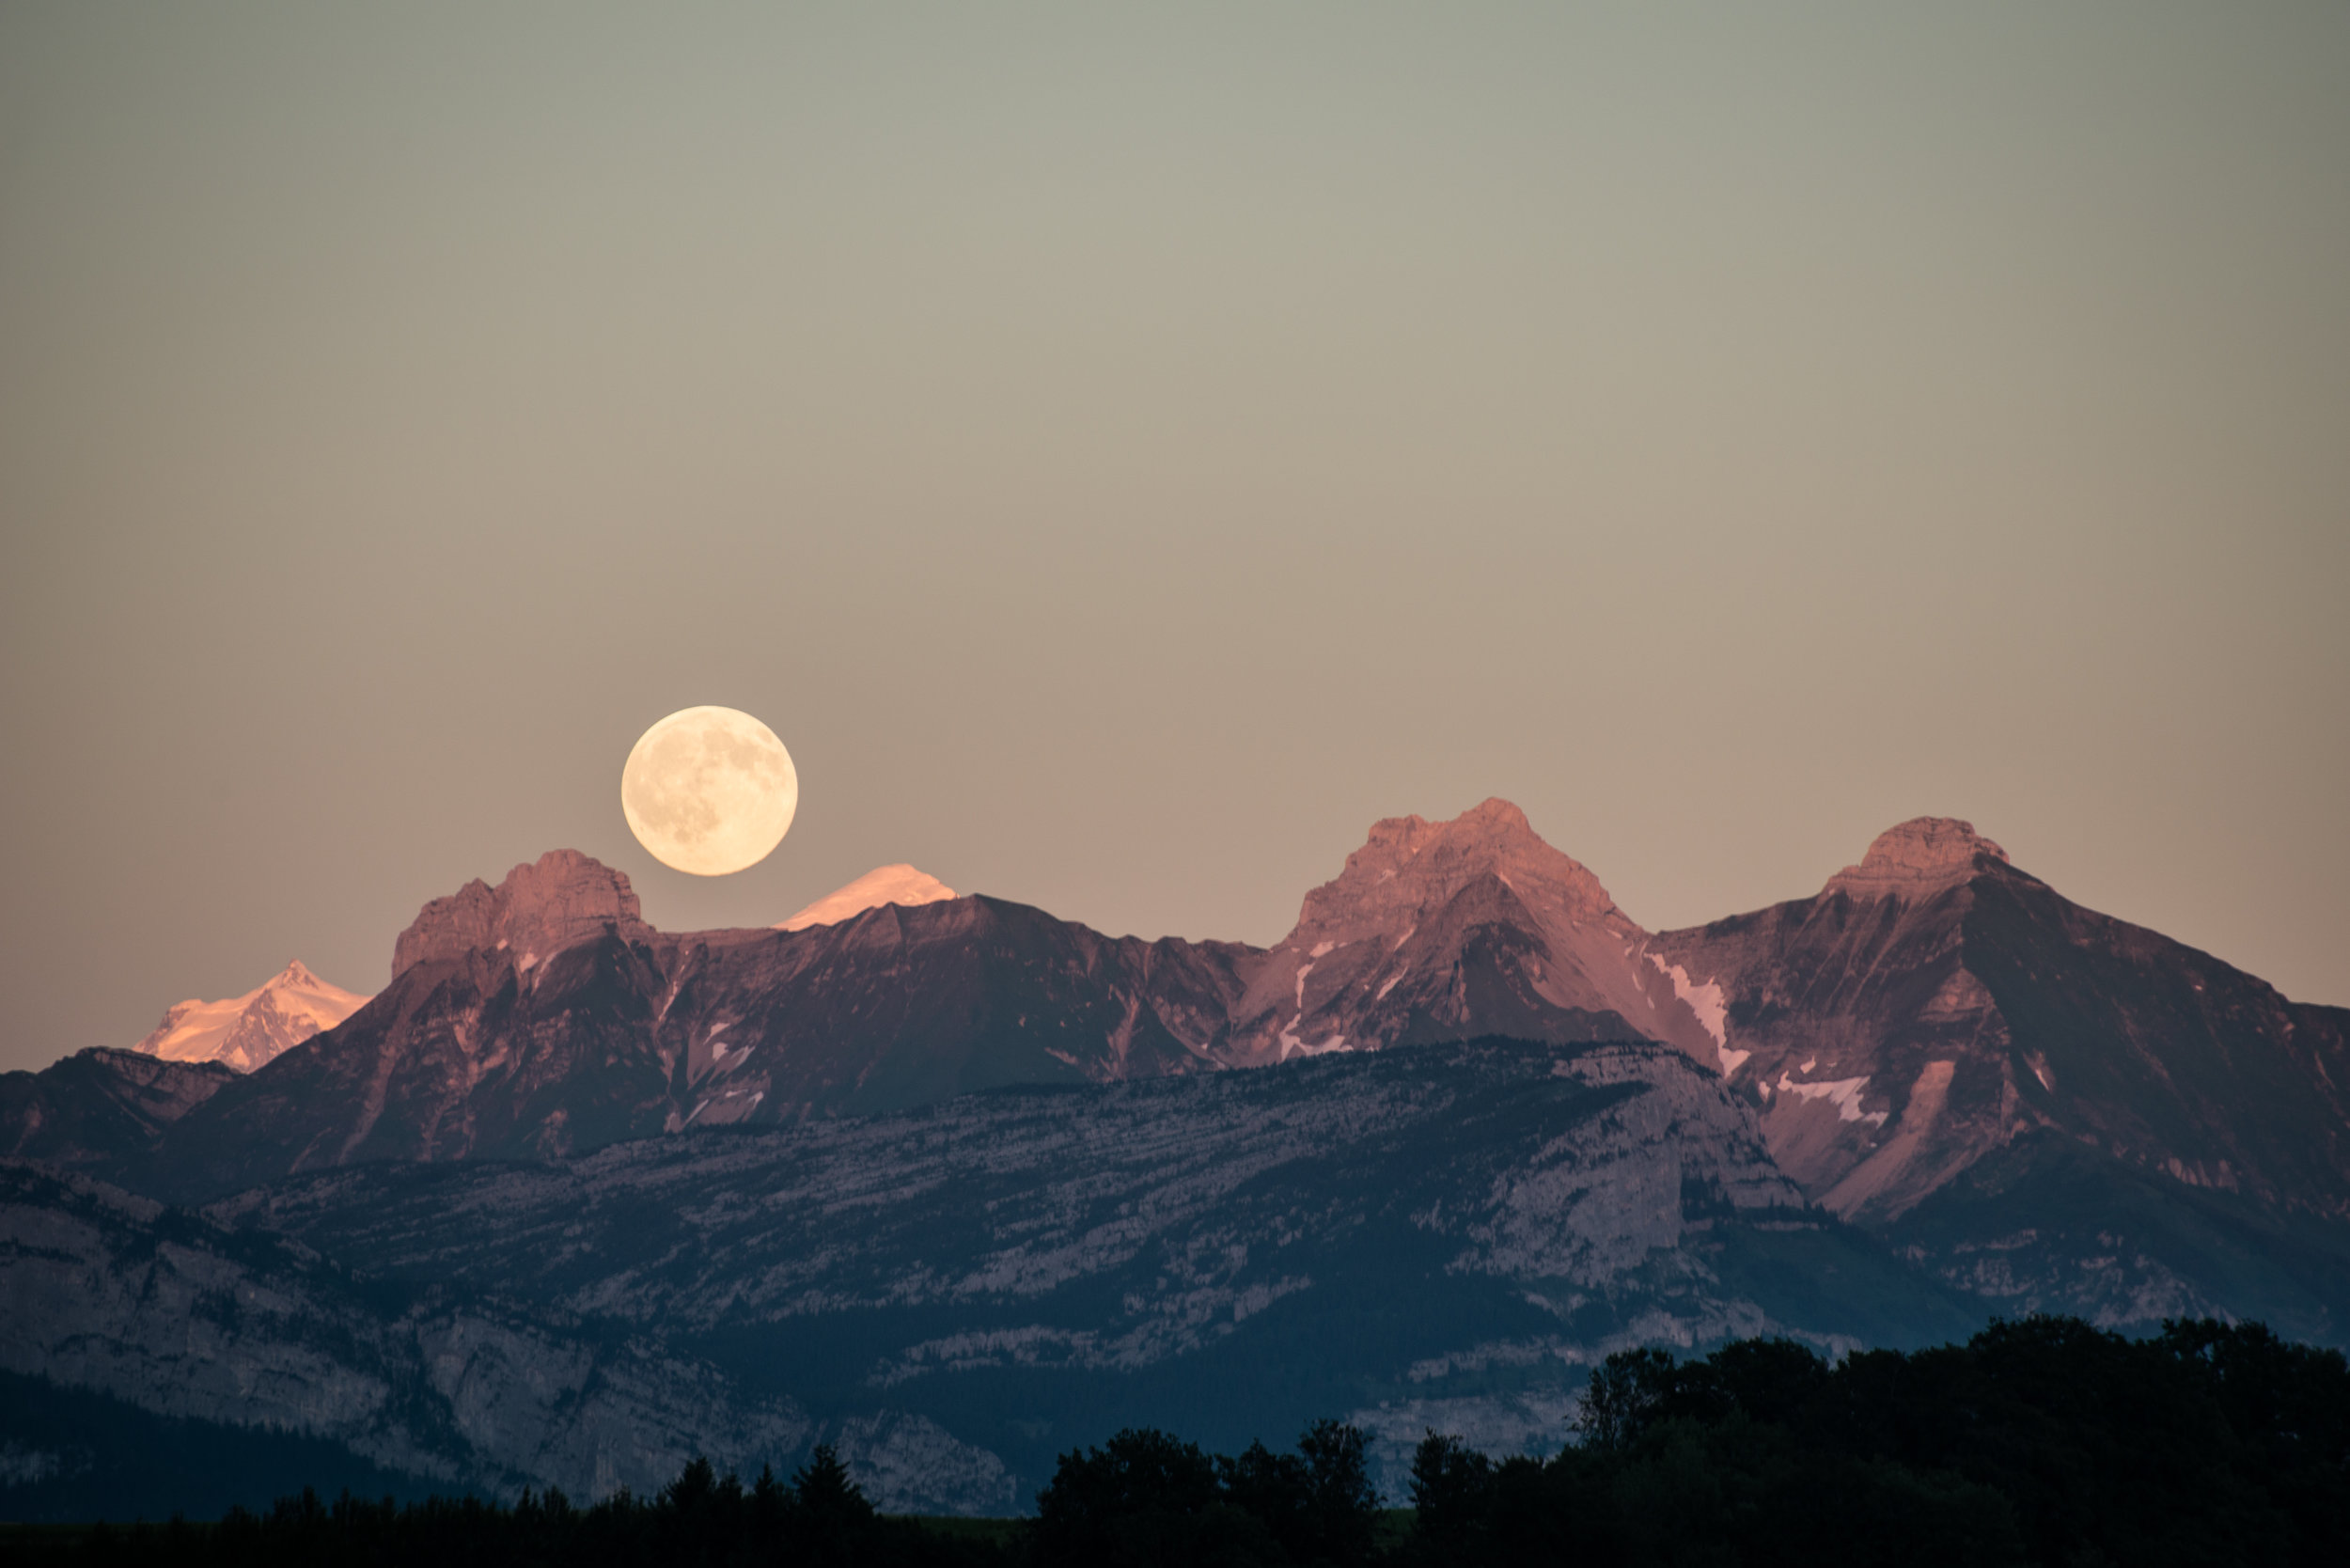 Quote by Mary Anne Radmacher I am not the same having seen the moon rise on the other side of the world